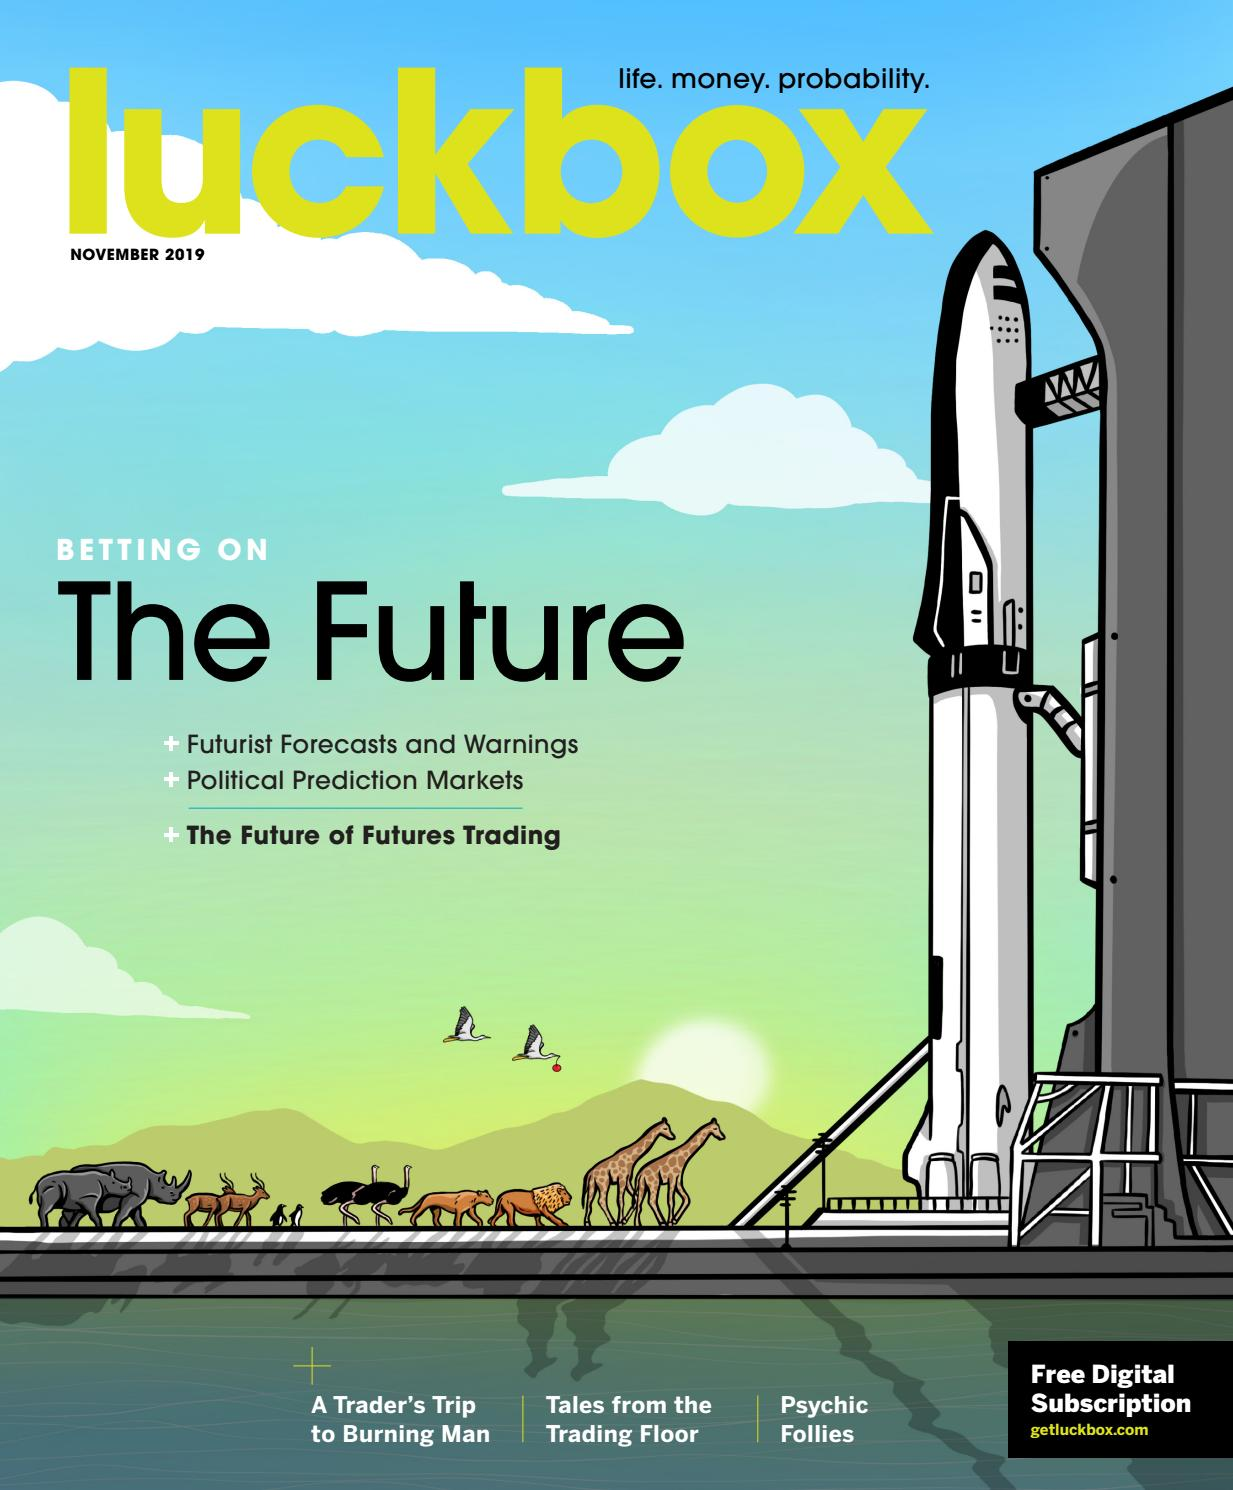 November 2019 (i) by luckbox magazine - issuu